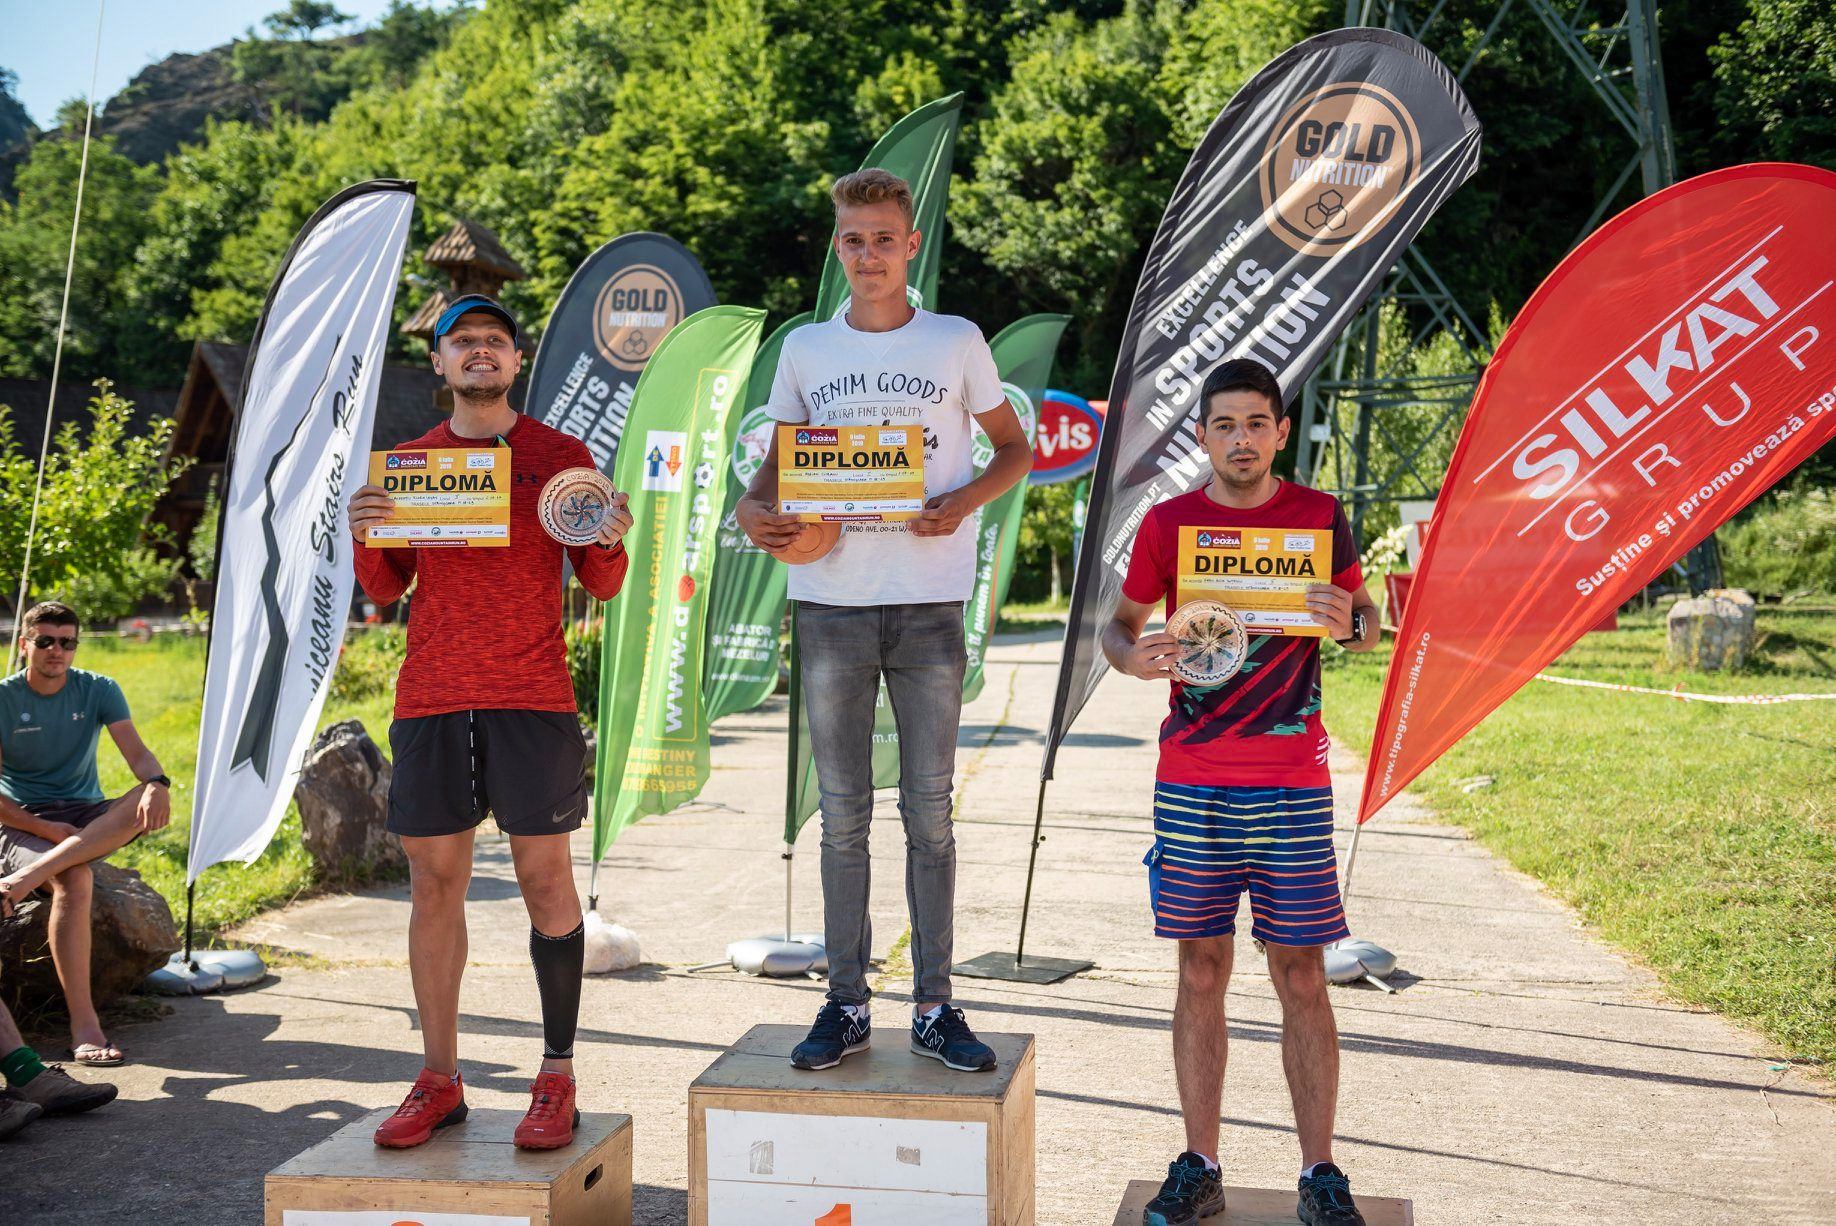 podium cozia montain run traseu stanisoara